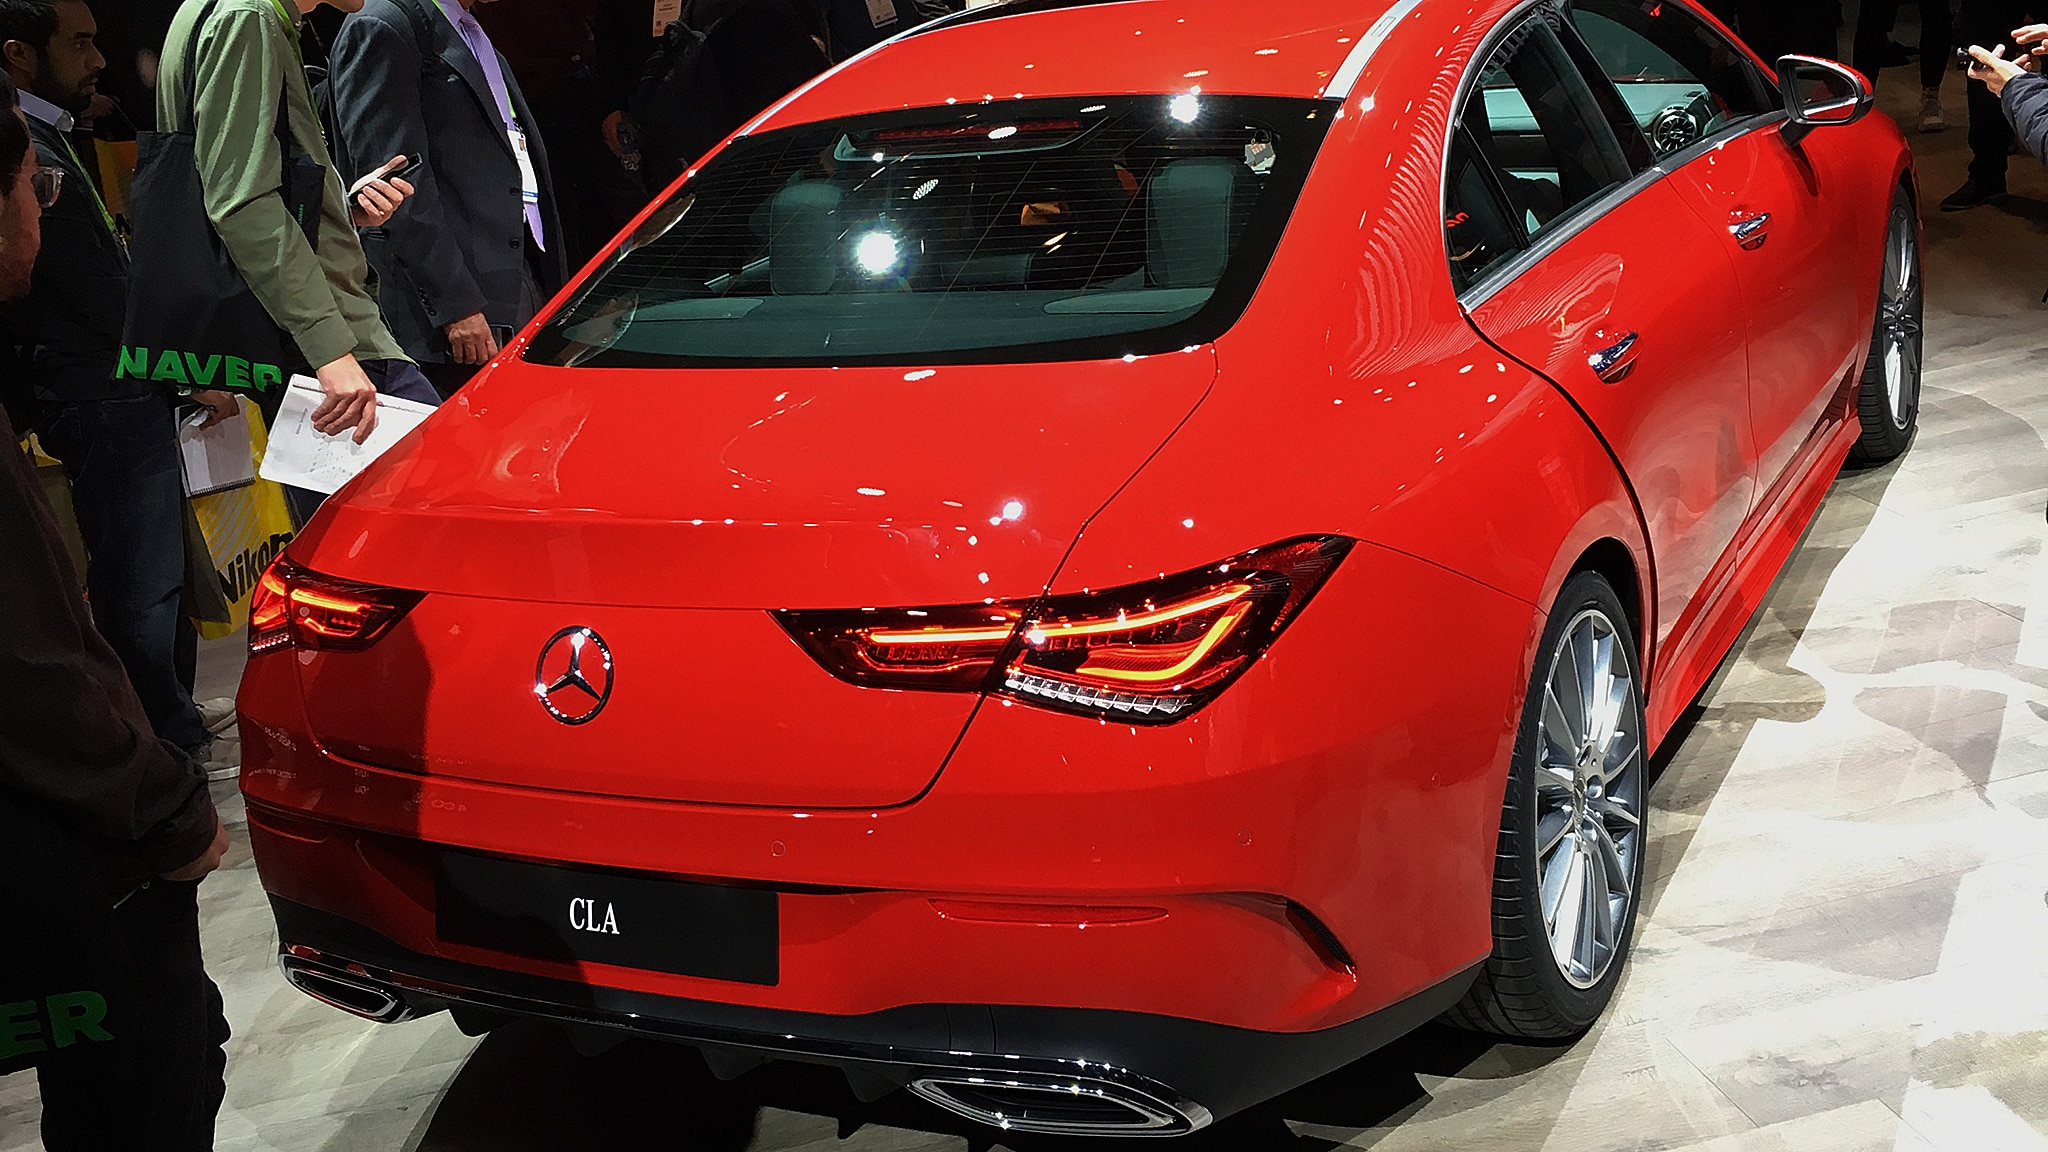 2010 Mercedes Benz Cla Rear 2019 Ces